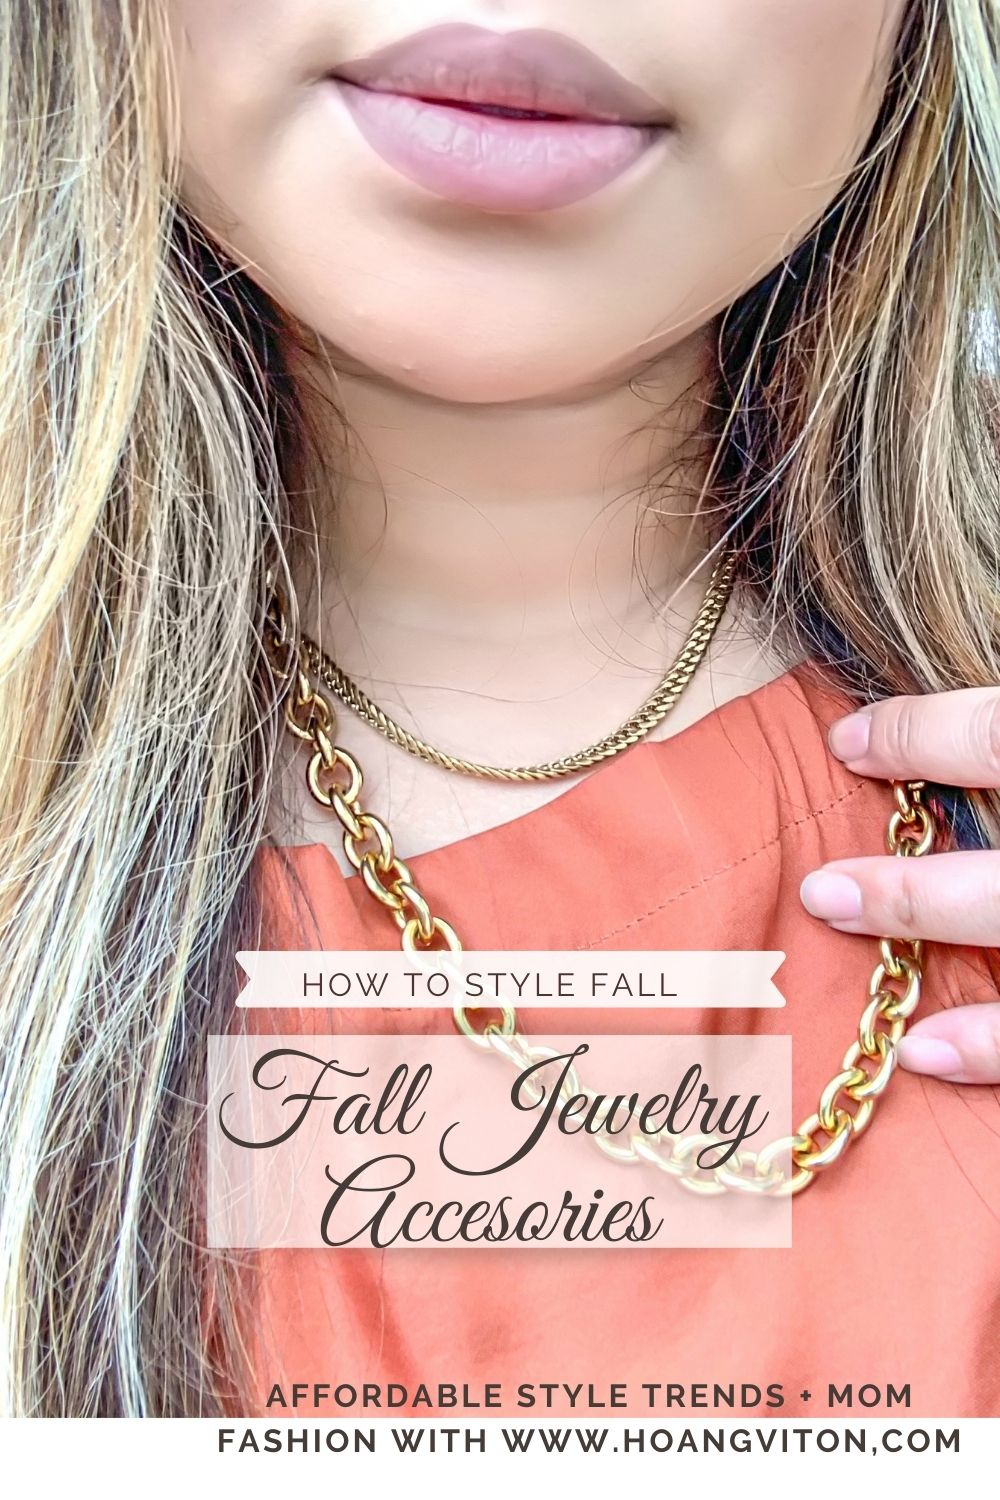 Fall Jewelry Accessories and How to Style